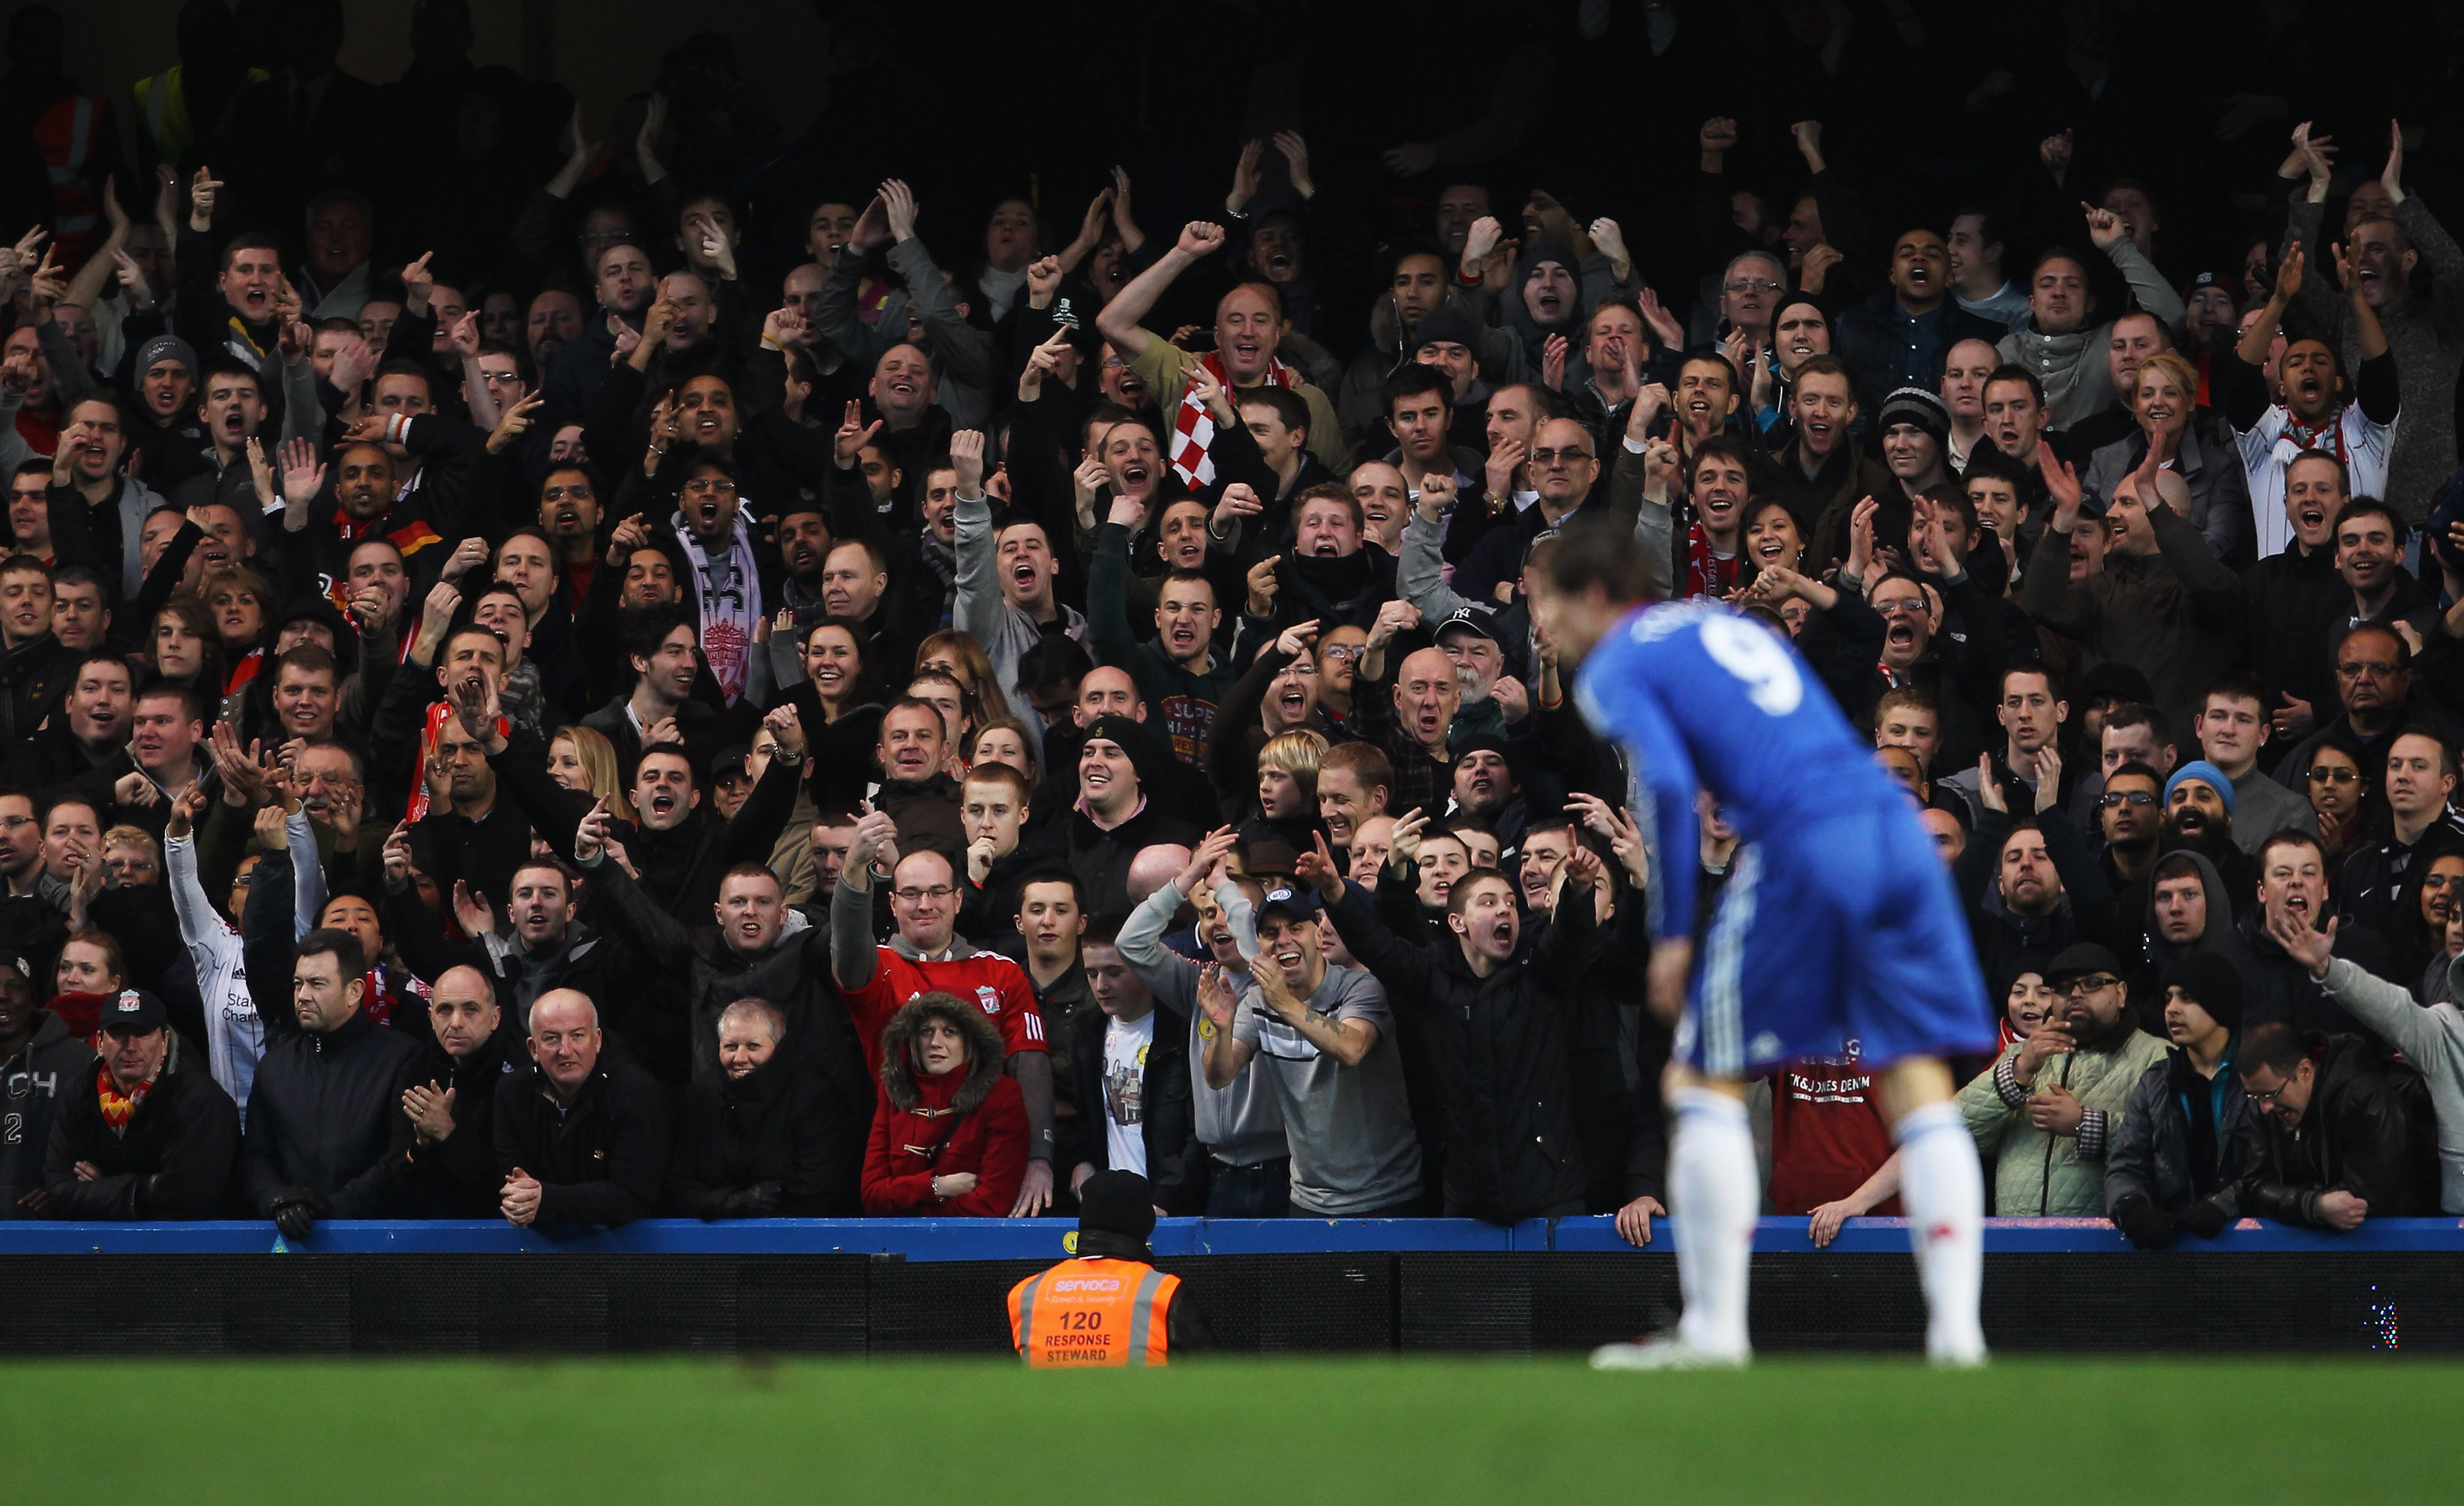 LONDON, ENGLAND - FEBRUARY 06:  Liverpool fans gestures towards Fernando Torres of Chelsea during the Barclays Premier League match between Chelsea and Liverpool at Stamford Bridge on February 6, 2011 in London, England.  (Photo by Scott Heavey/Getty Imag